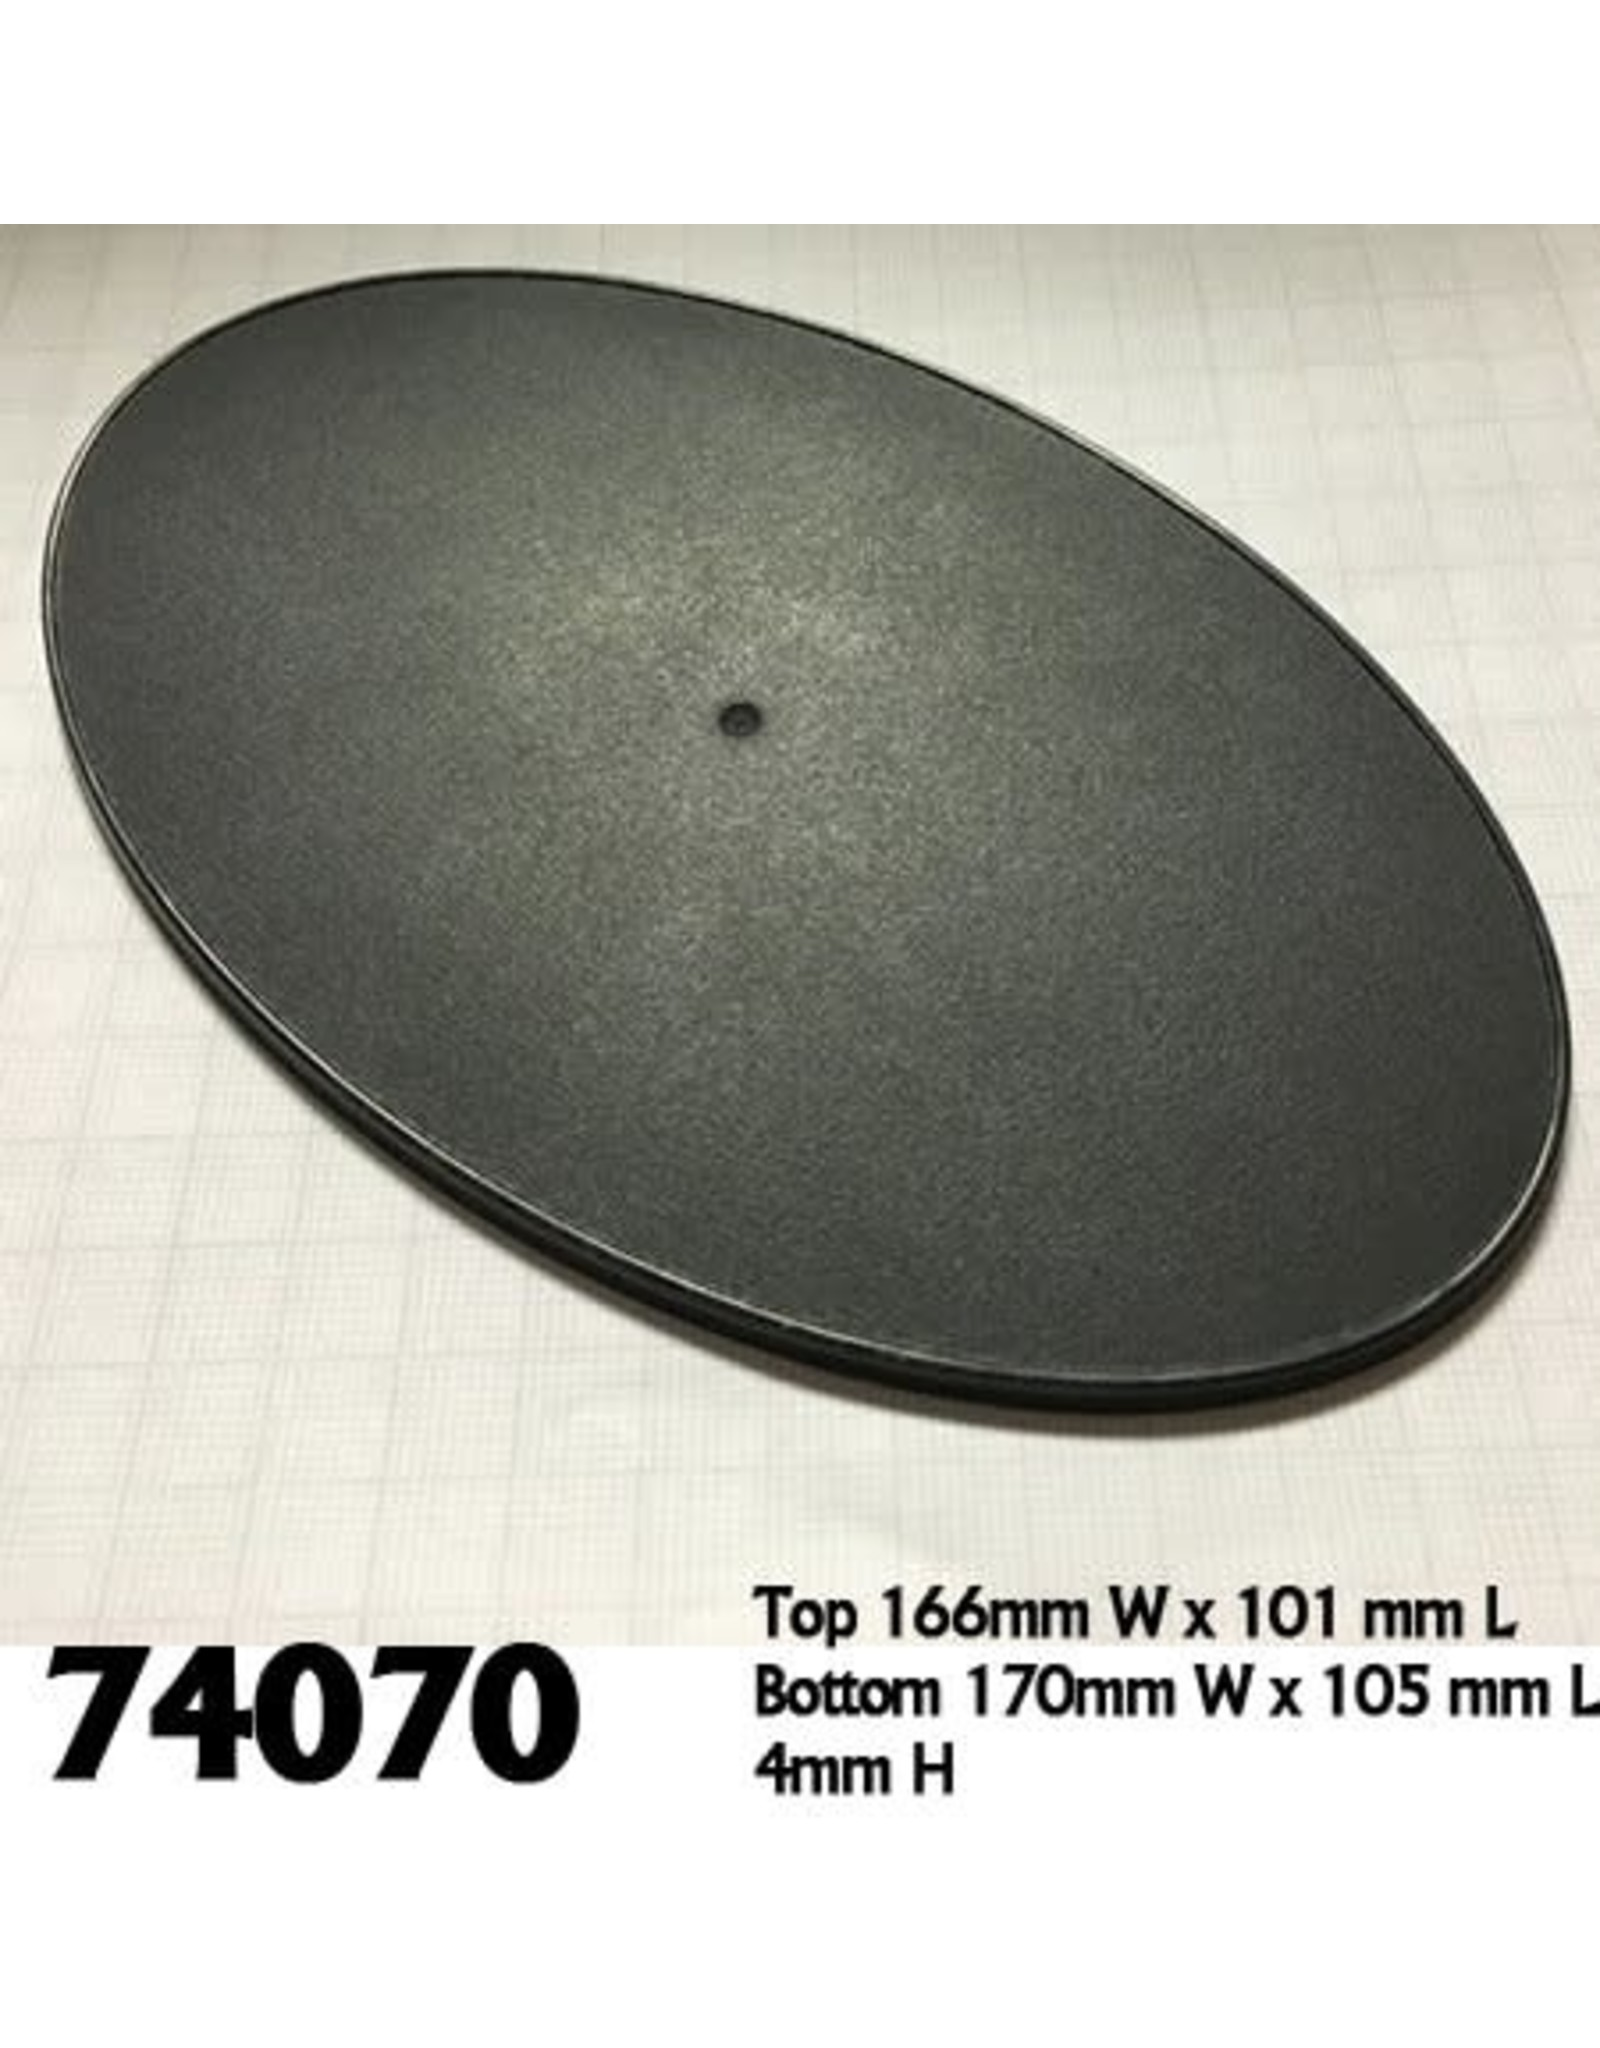 Reaper Miniatures 170mm x 105mm Oval Gaming Base